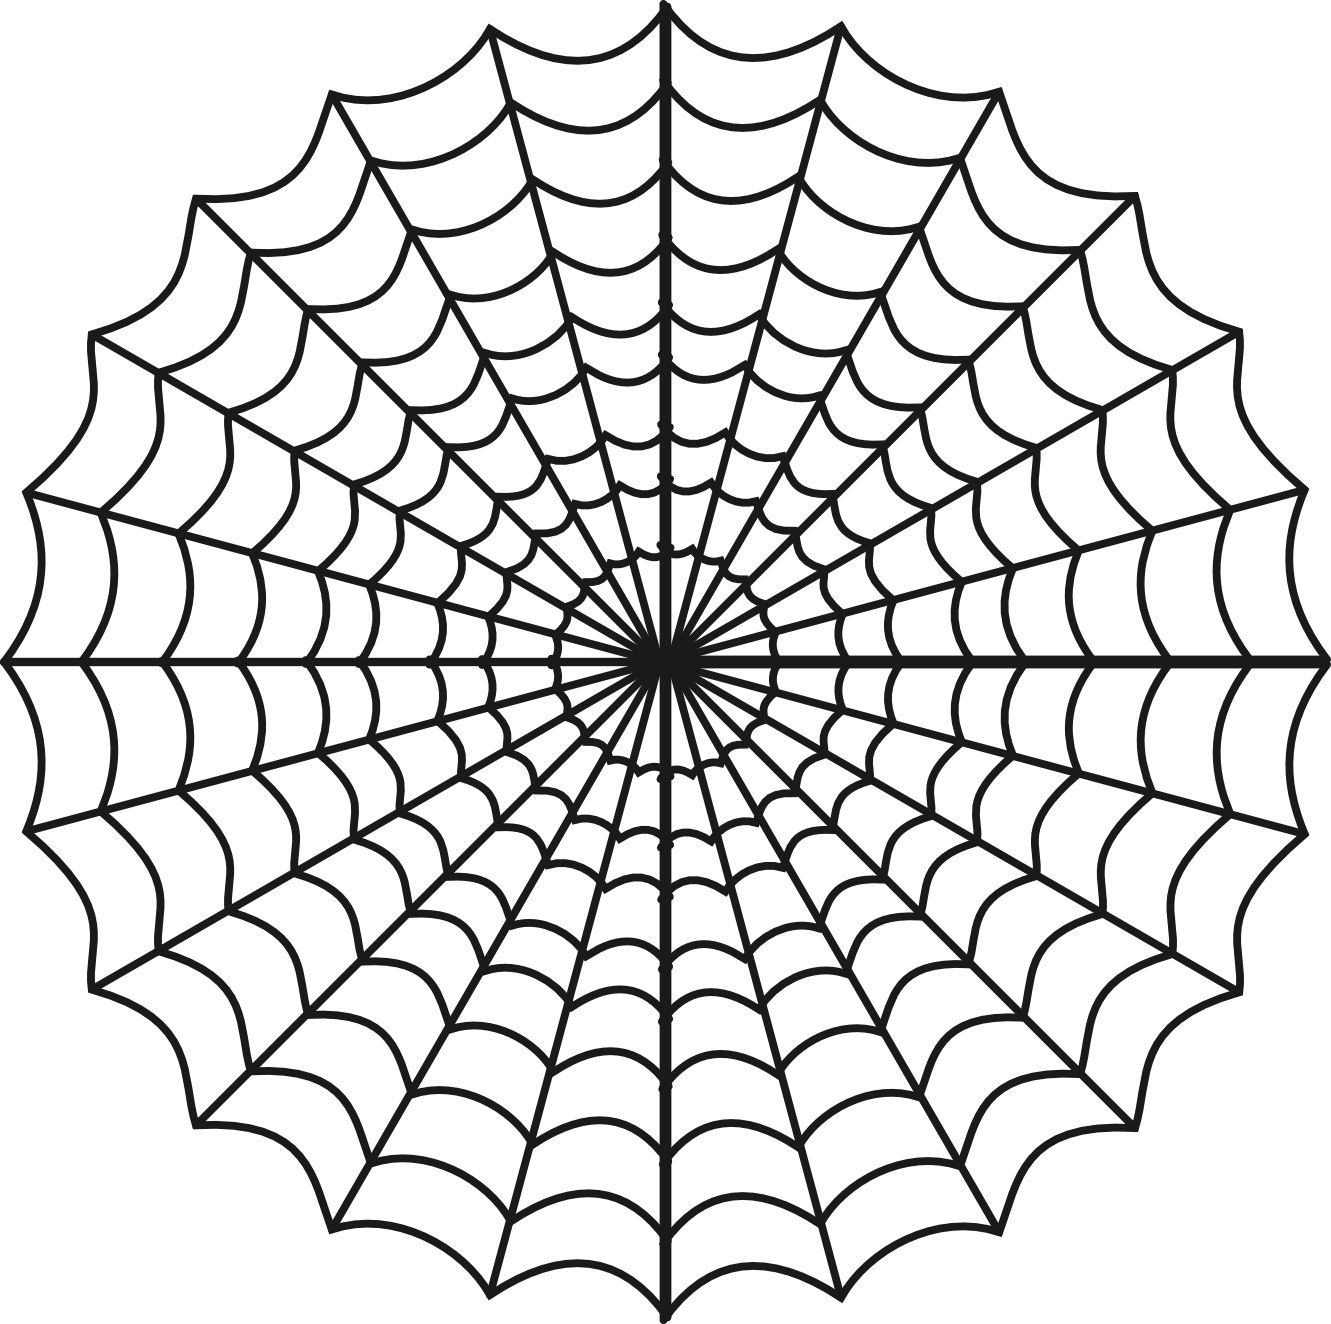 Free Printable Spider Web Coloring Pages For Kids Inside   Preschool - Free Printable Spider Web